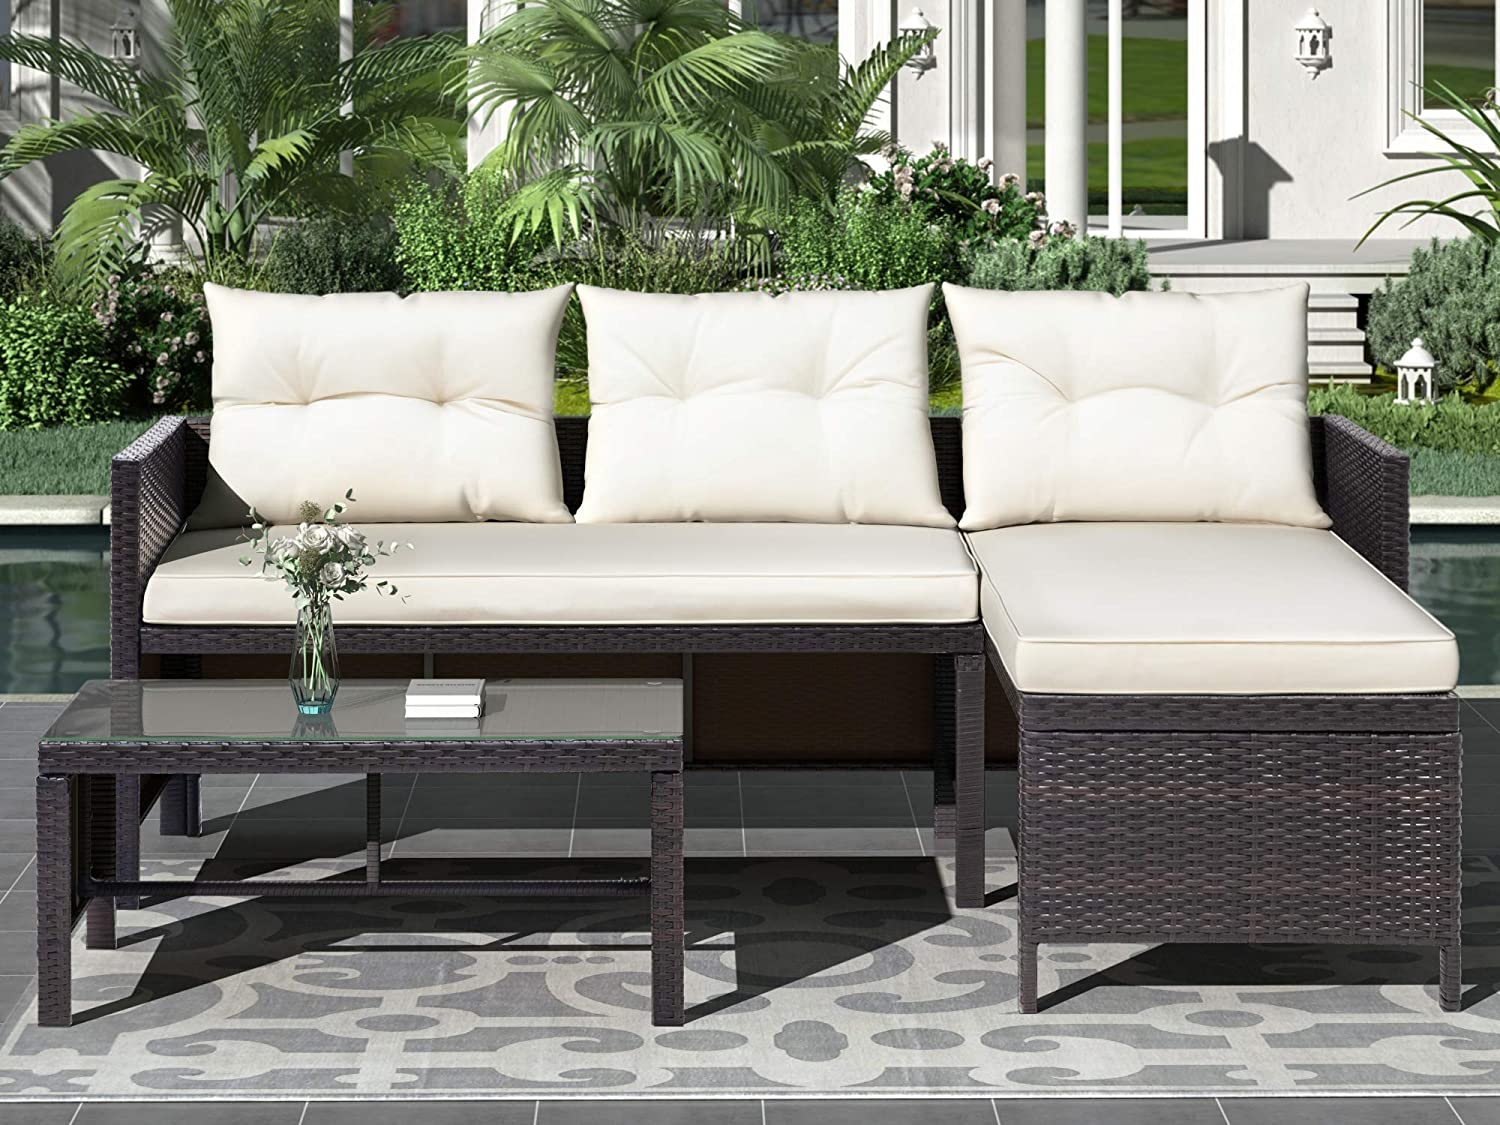 FURMIT 3 PCS Outdoor Rattan Furniture Cushions with Sofa Popularity Animer and price revision Set